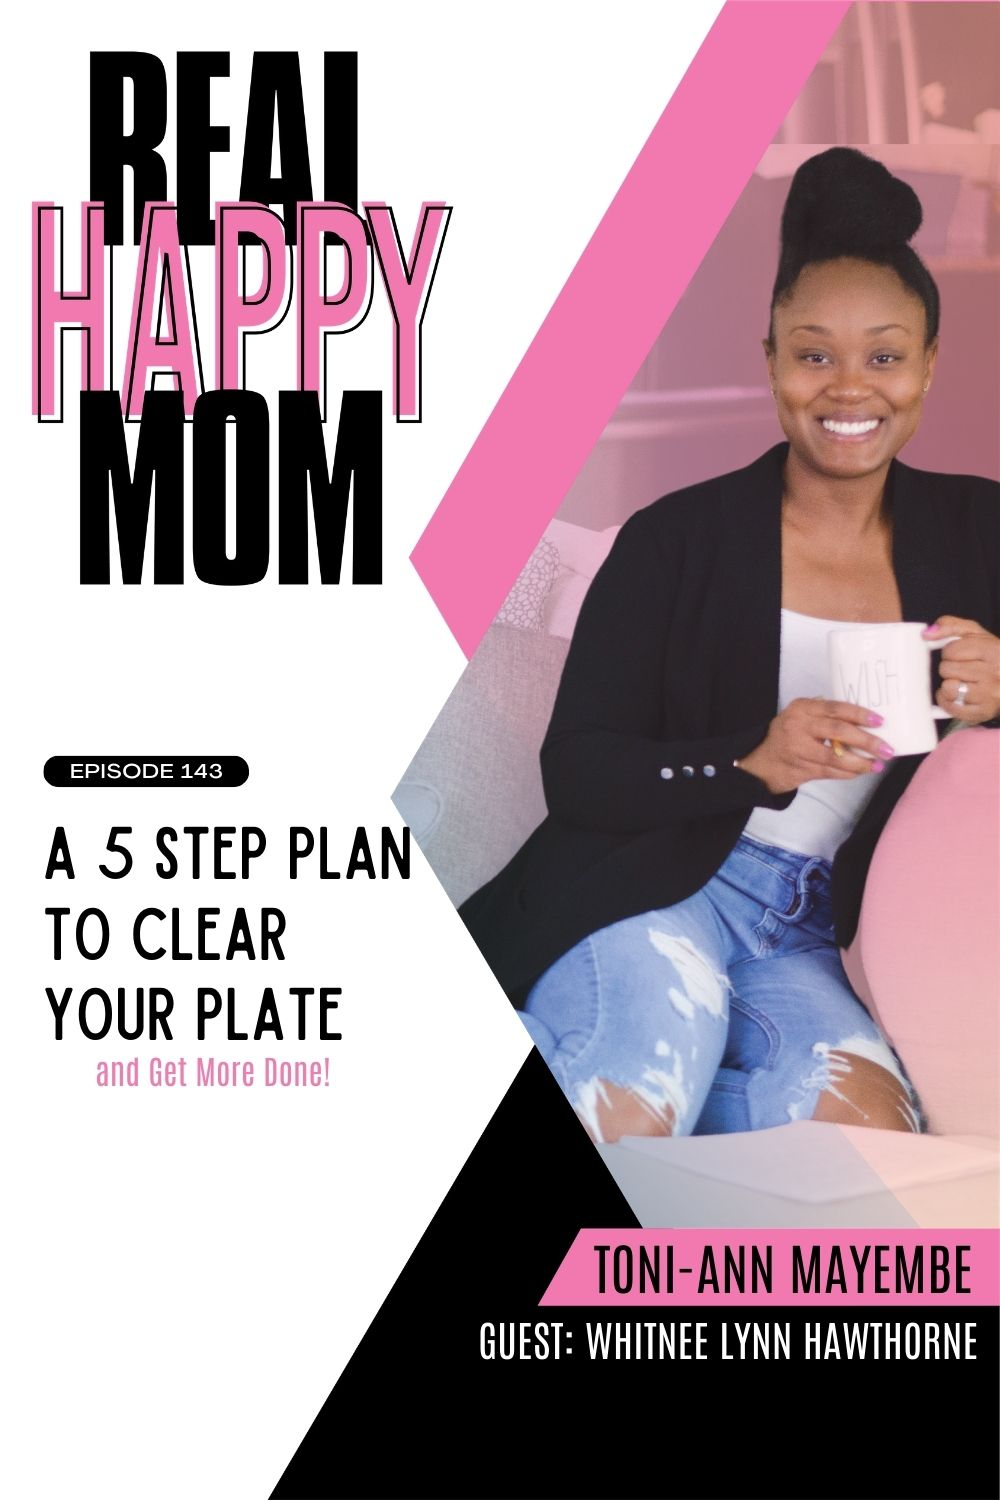 A 5 Step Plan to Clear Your Plate and Get More Done